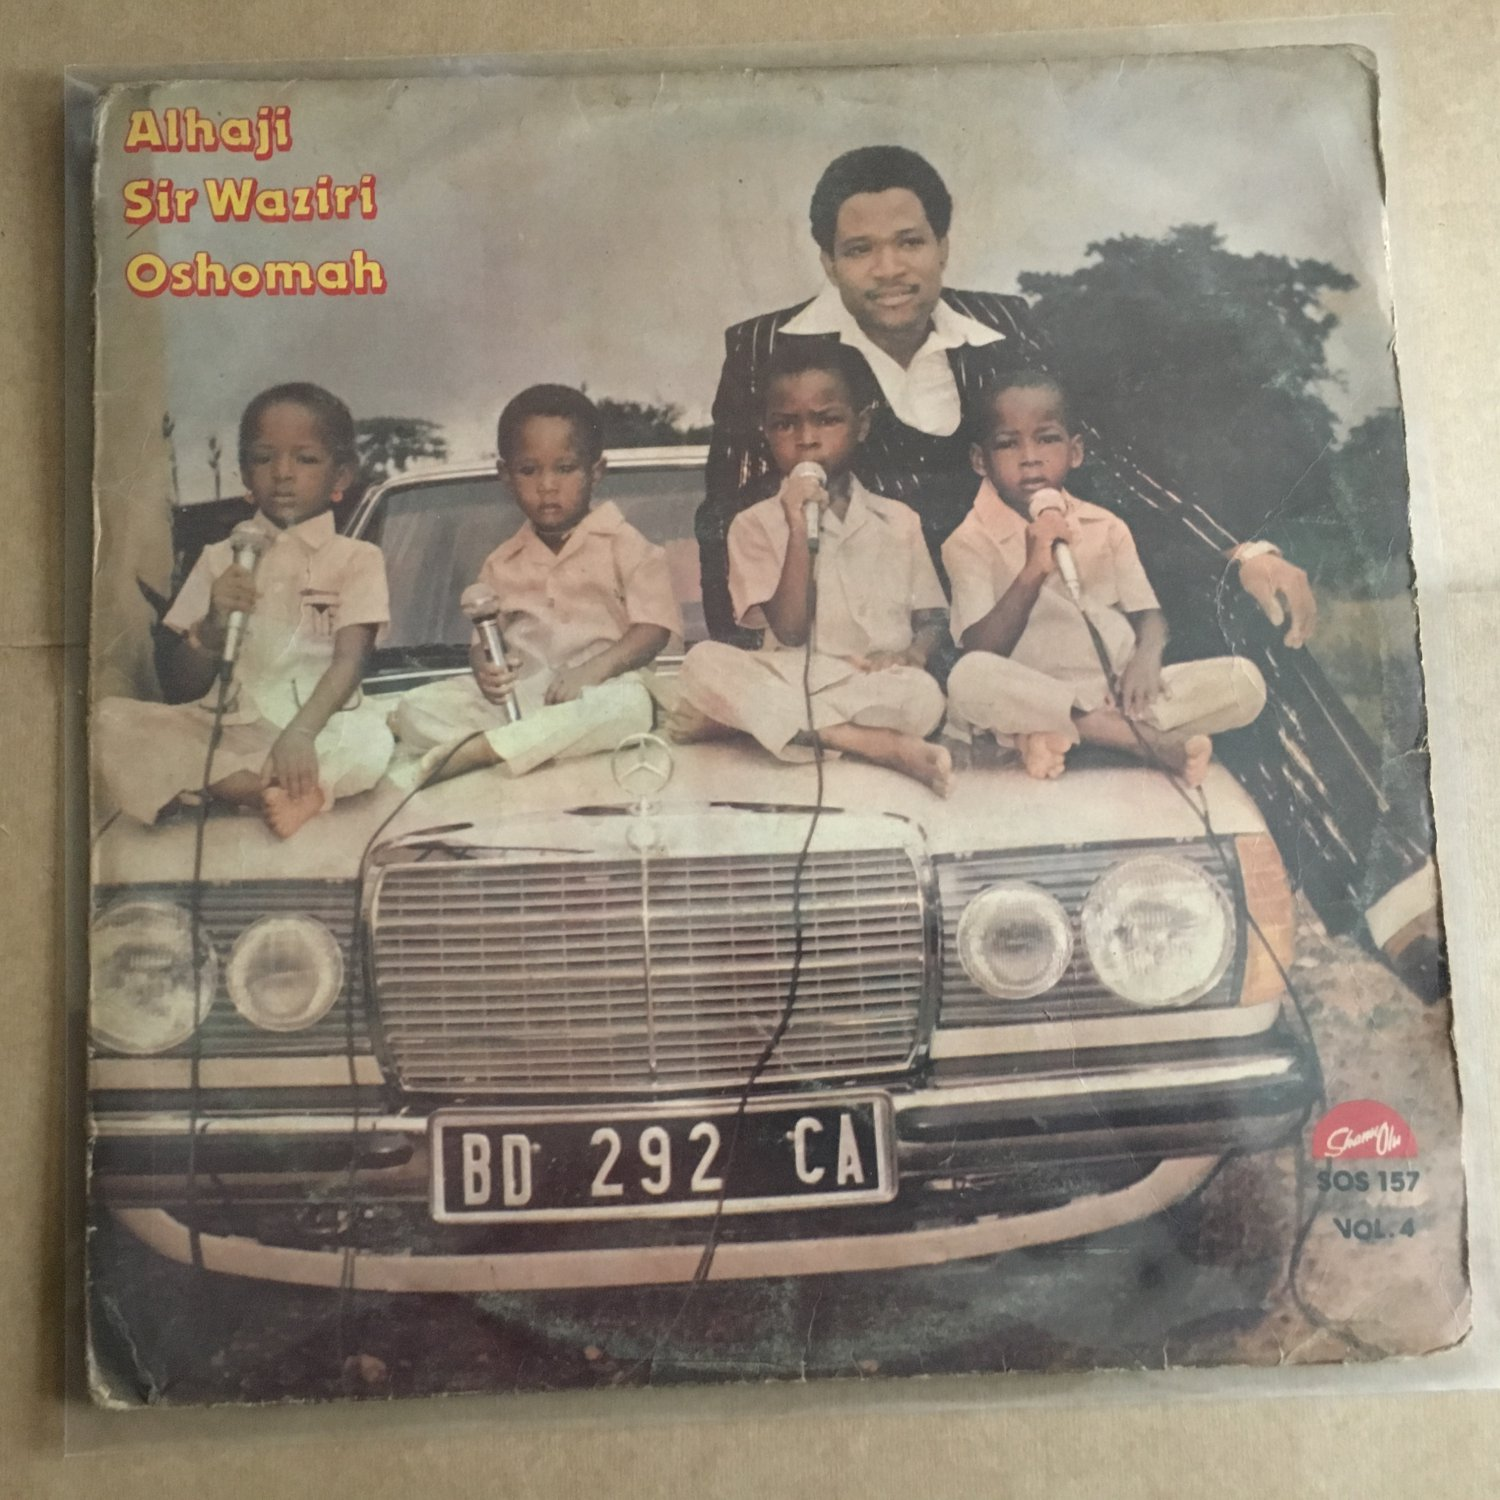 SIR WAZIRI OSHOMAH LP vol. 4 HIGHLIFE NIGERIA mp3 LISTEN